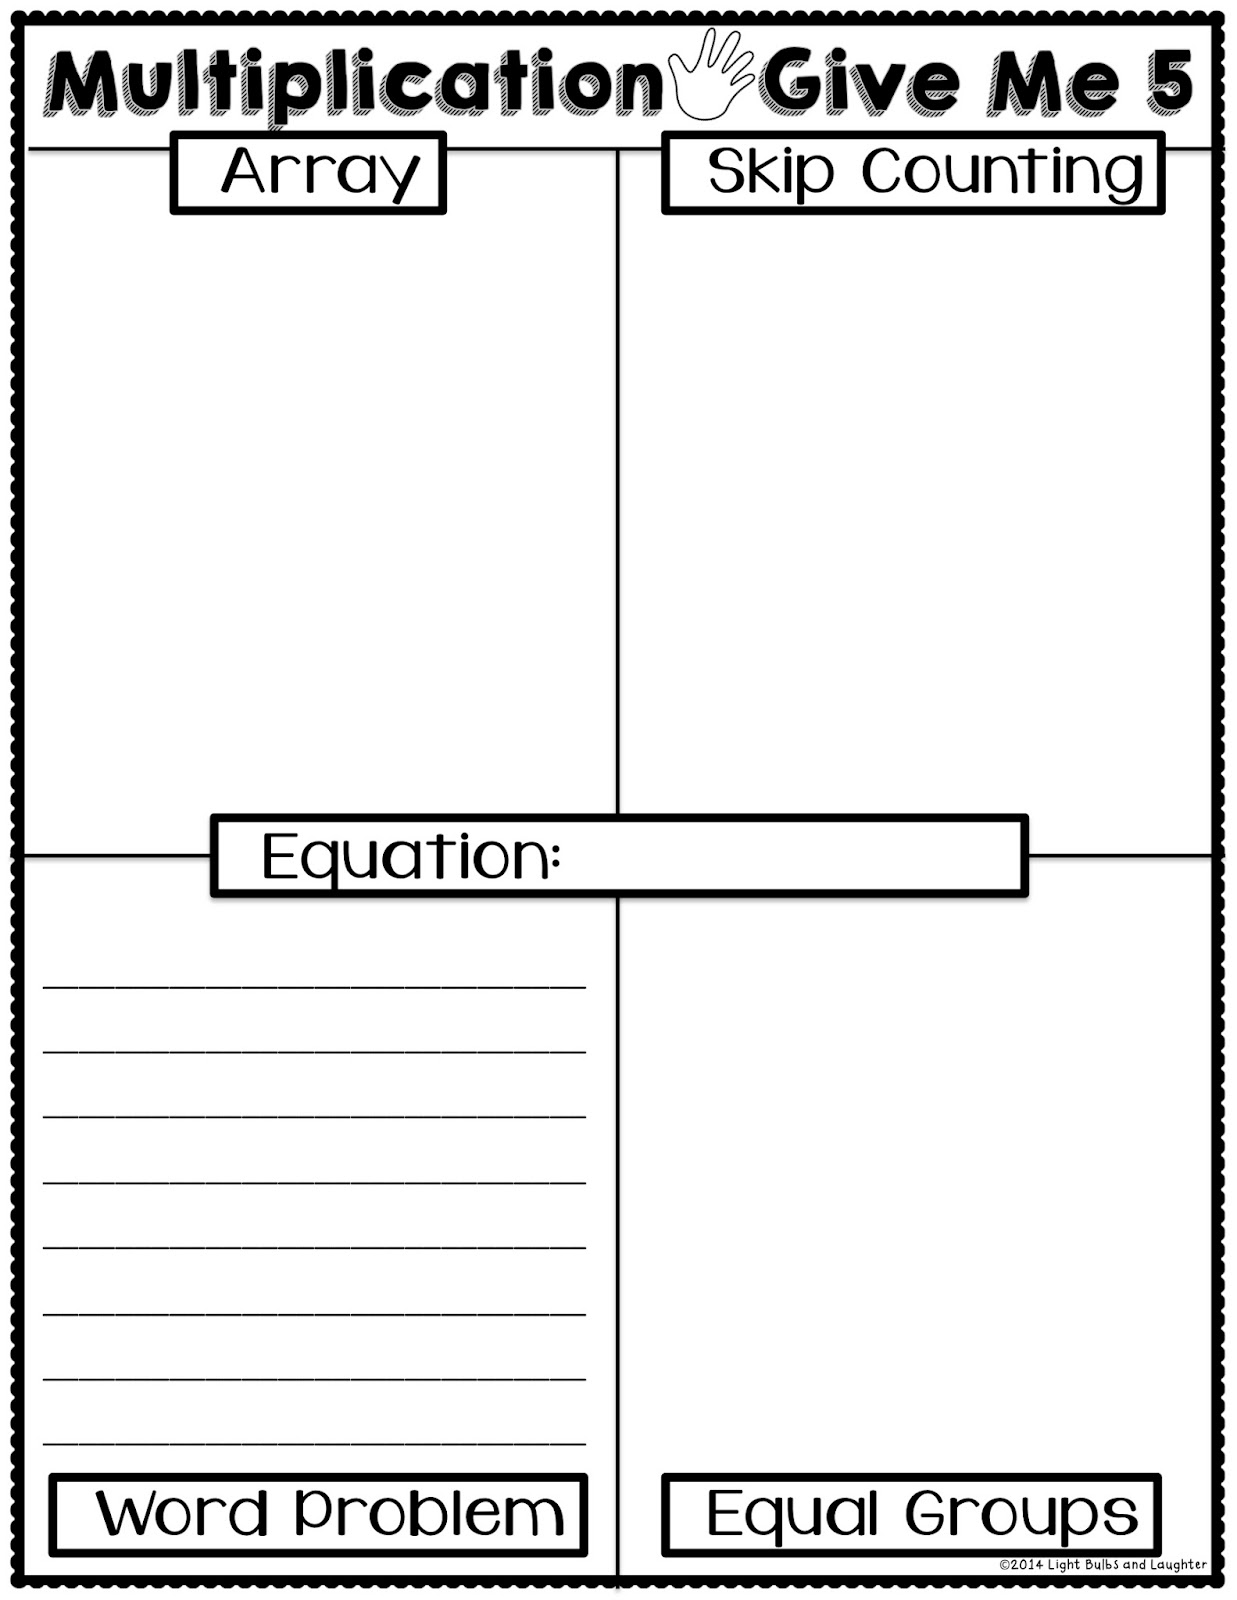 math worksheet : light bulbs and laughter  quot;i d like some multiplication with my  : Multiplication Array Worksheet